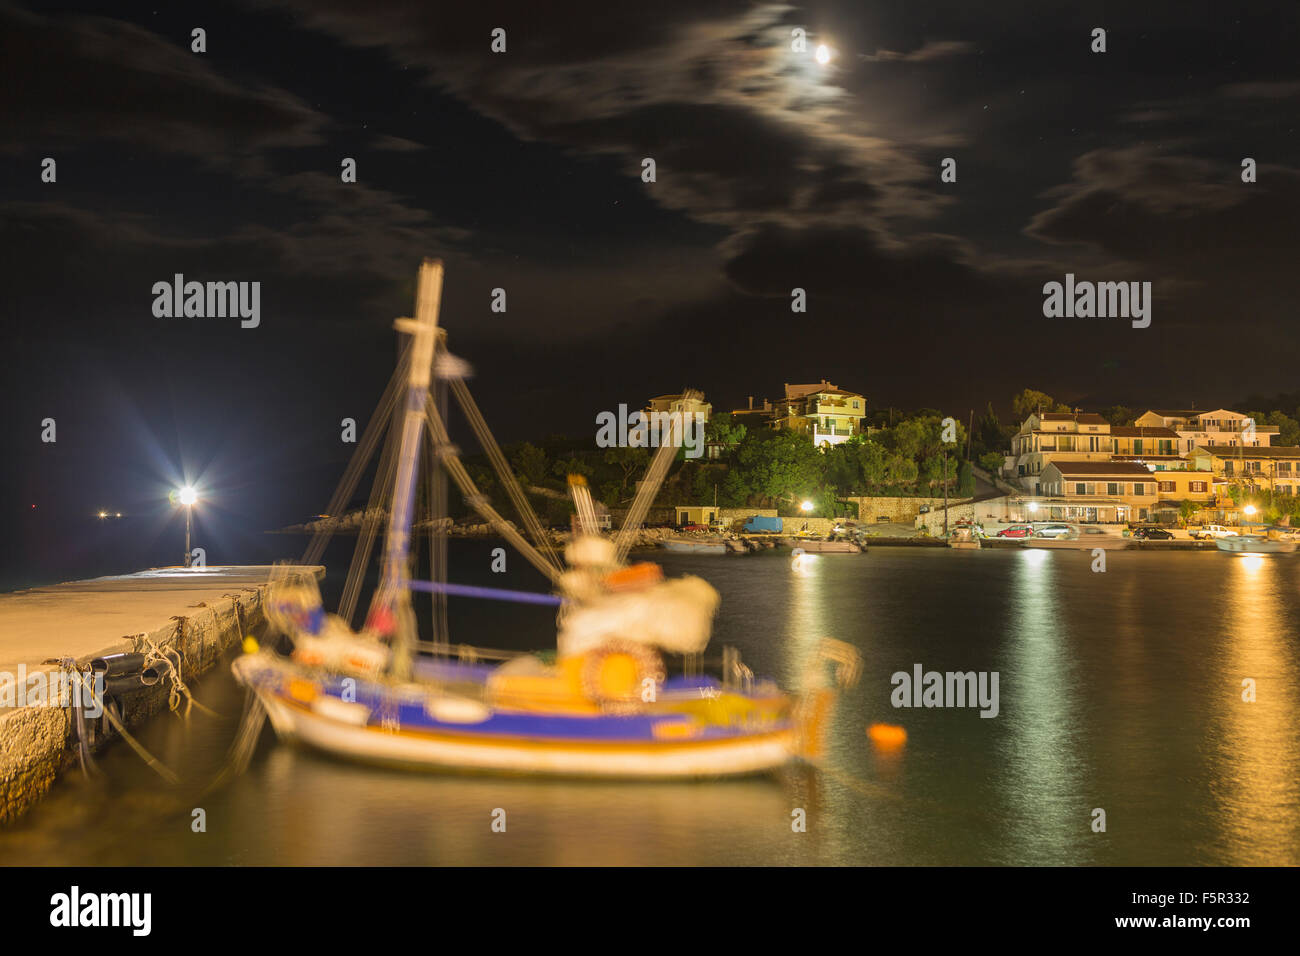 A Greek fishing boat is moored up overnight in the harbour at Kassiopi, Corfu, Greece. Stock Photo